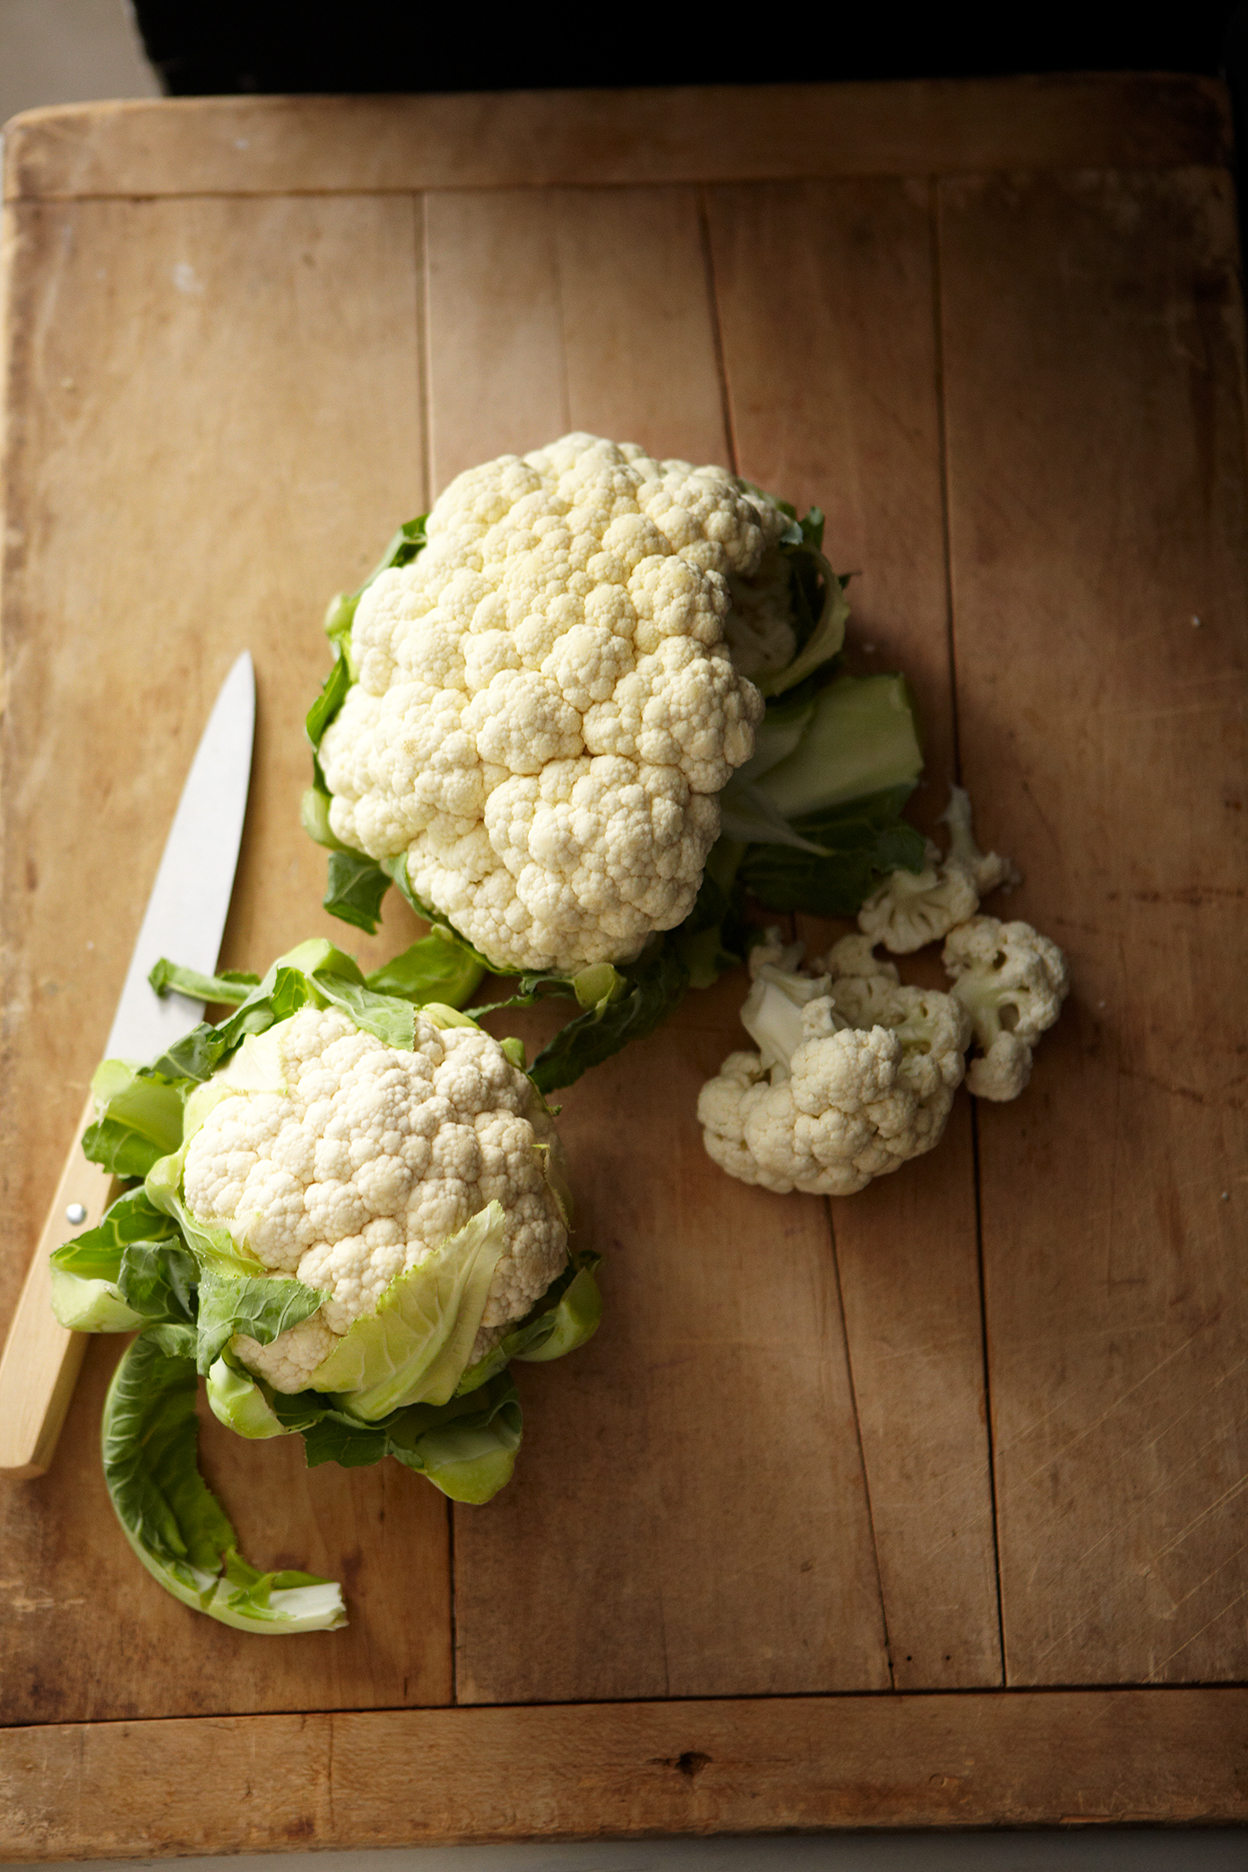 Why Cauliflower Is So Popular as a Carb Substitute